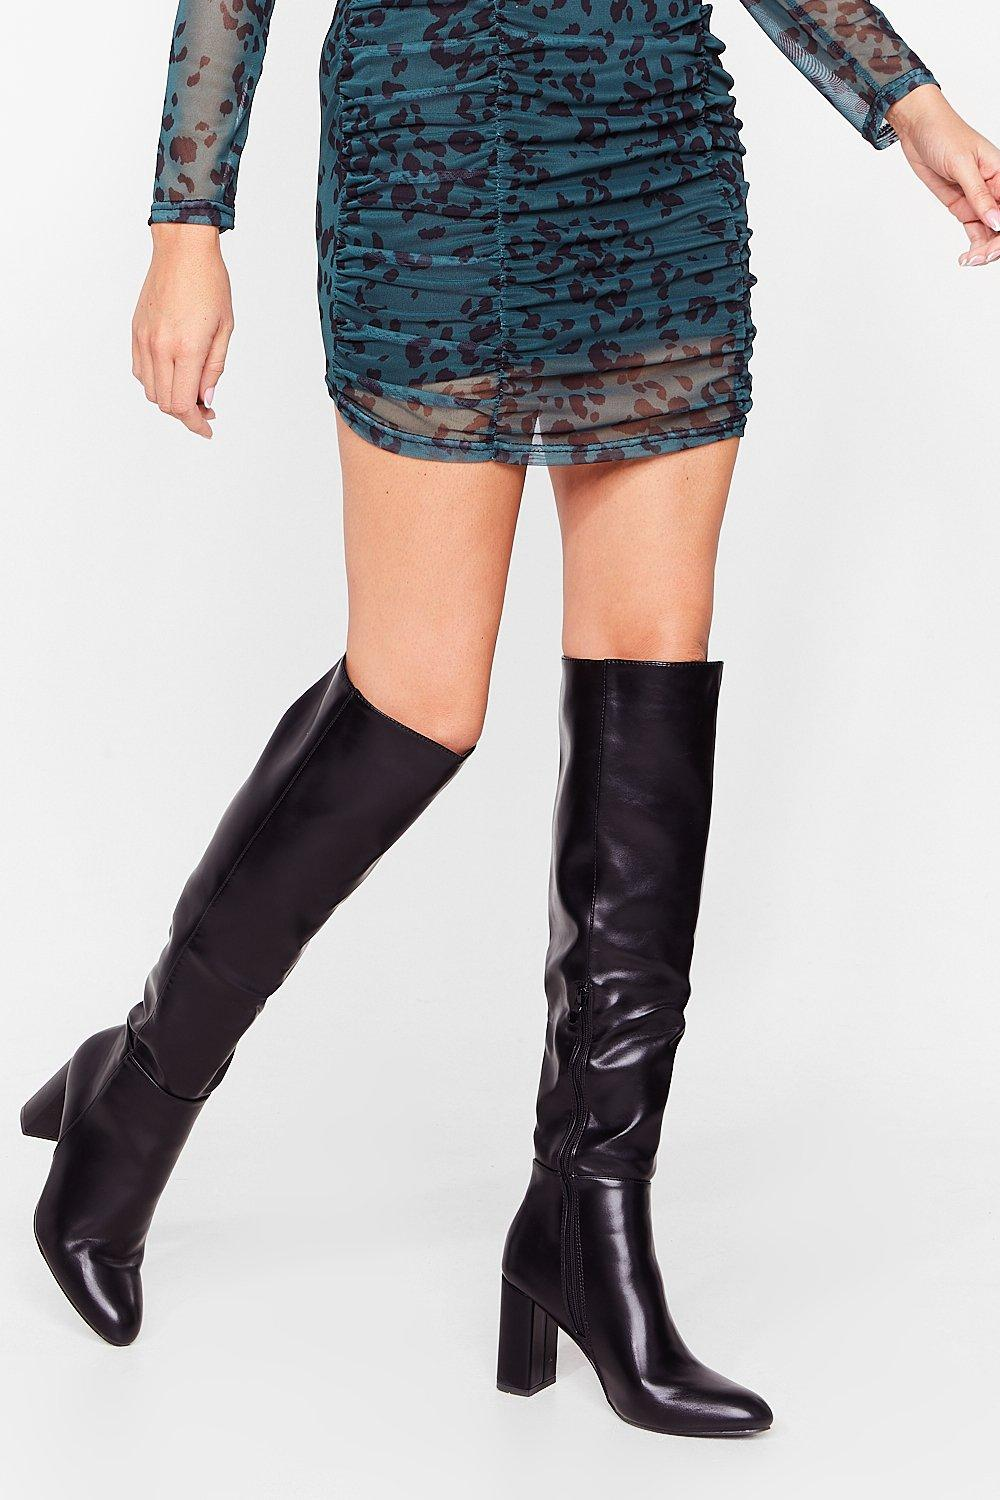 Image of Show Up Over-the-Knee Faux Leather Boots